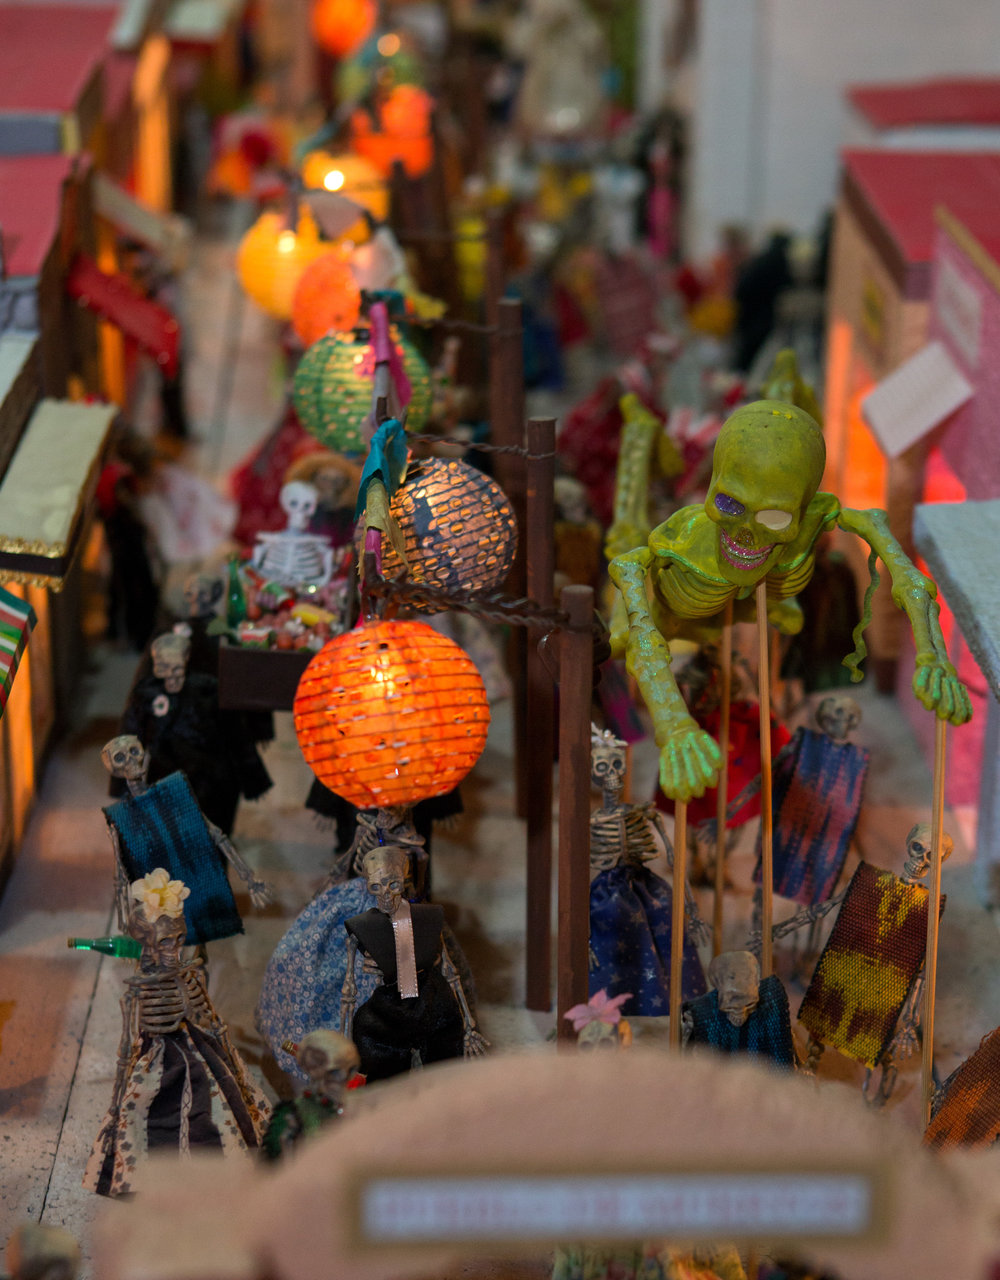 A model Day of the Dead town created by Kristen Snodglass on display in the Jose Martines Memorial Galeria during the Sofía Quintero Art and Cultural Center's 20th annual Day of the Dead celebration at on Broadway St. in Toledo on Saturday, Nov. 5, 2016.